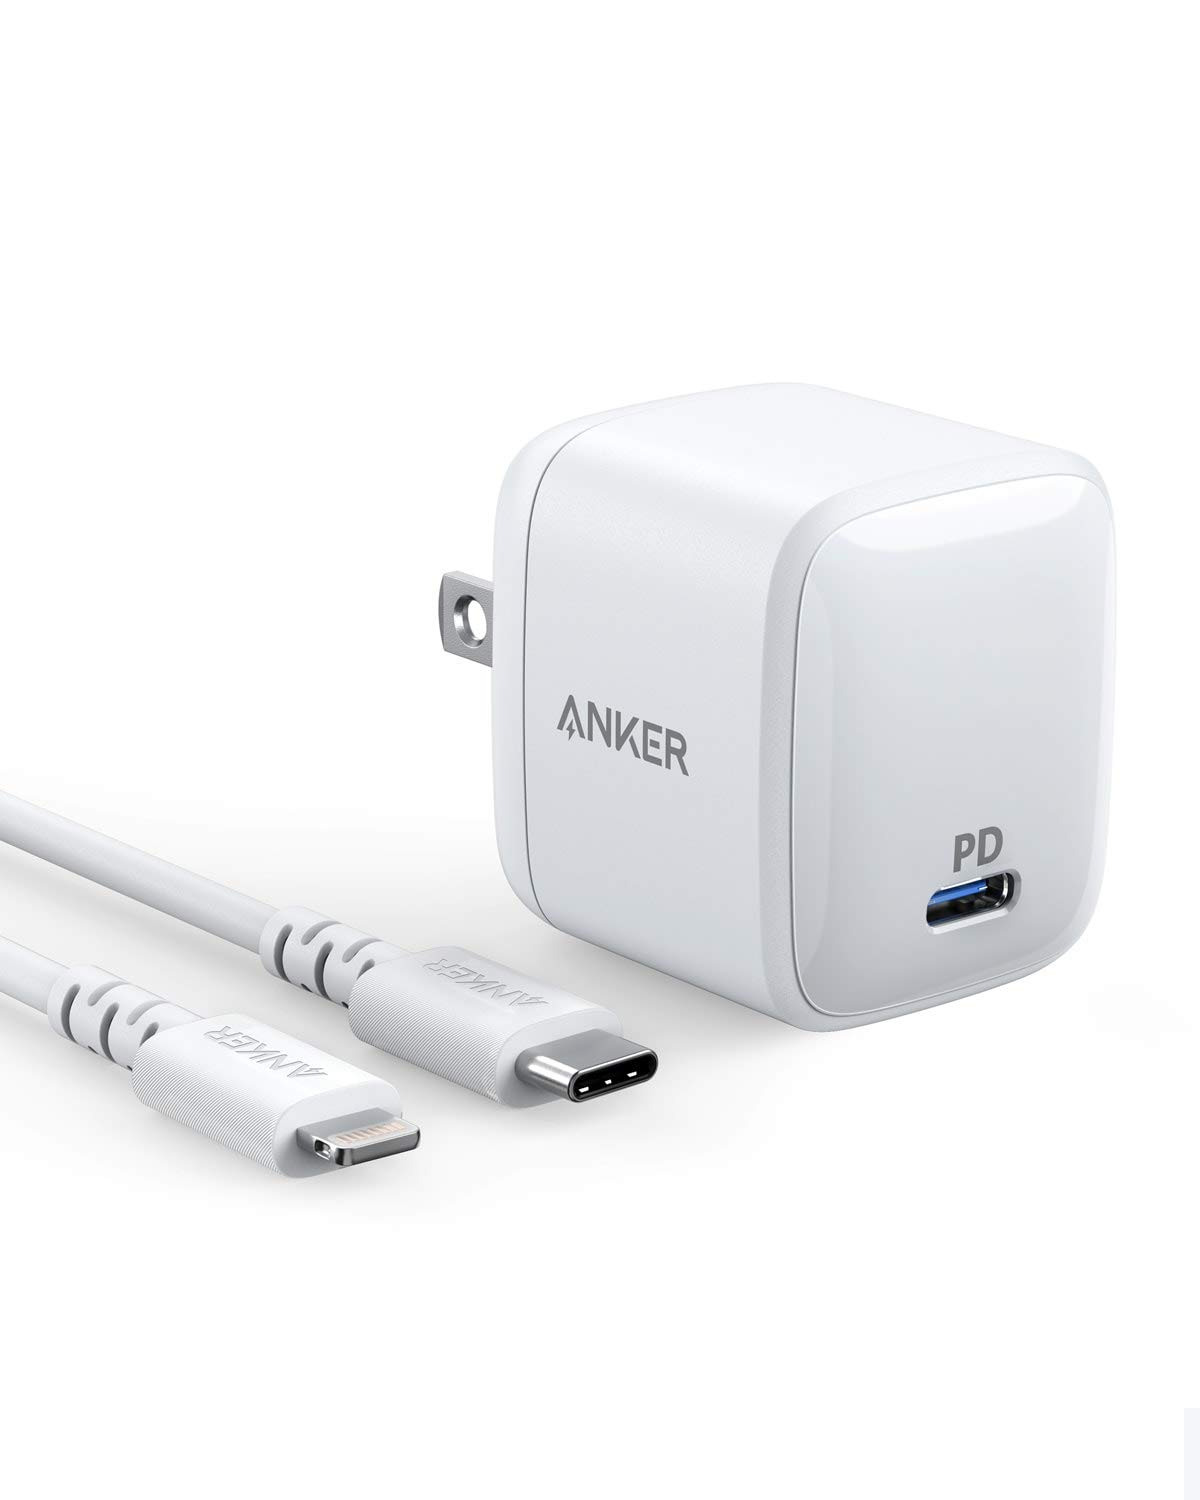 Anker 30W USB C Charger [GaN] PowerPort Atom PD 1 with 3 Foot Powerline Select USB-C to Lightning Cable Combo, Type-C Power Delivery Wall Charger for iPhone XR/XS Max/X/8, iPad Pro, MacBook, and More by Anker